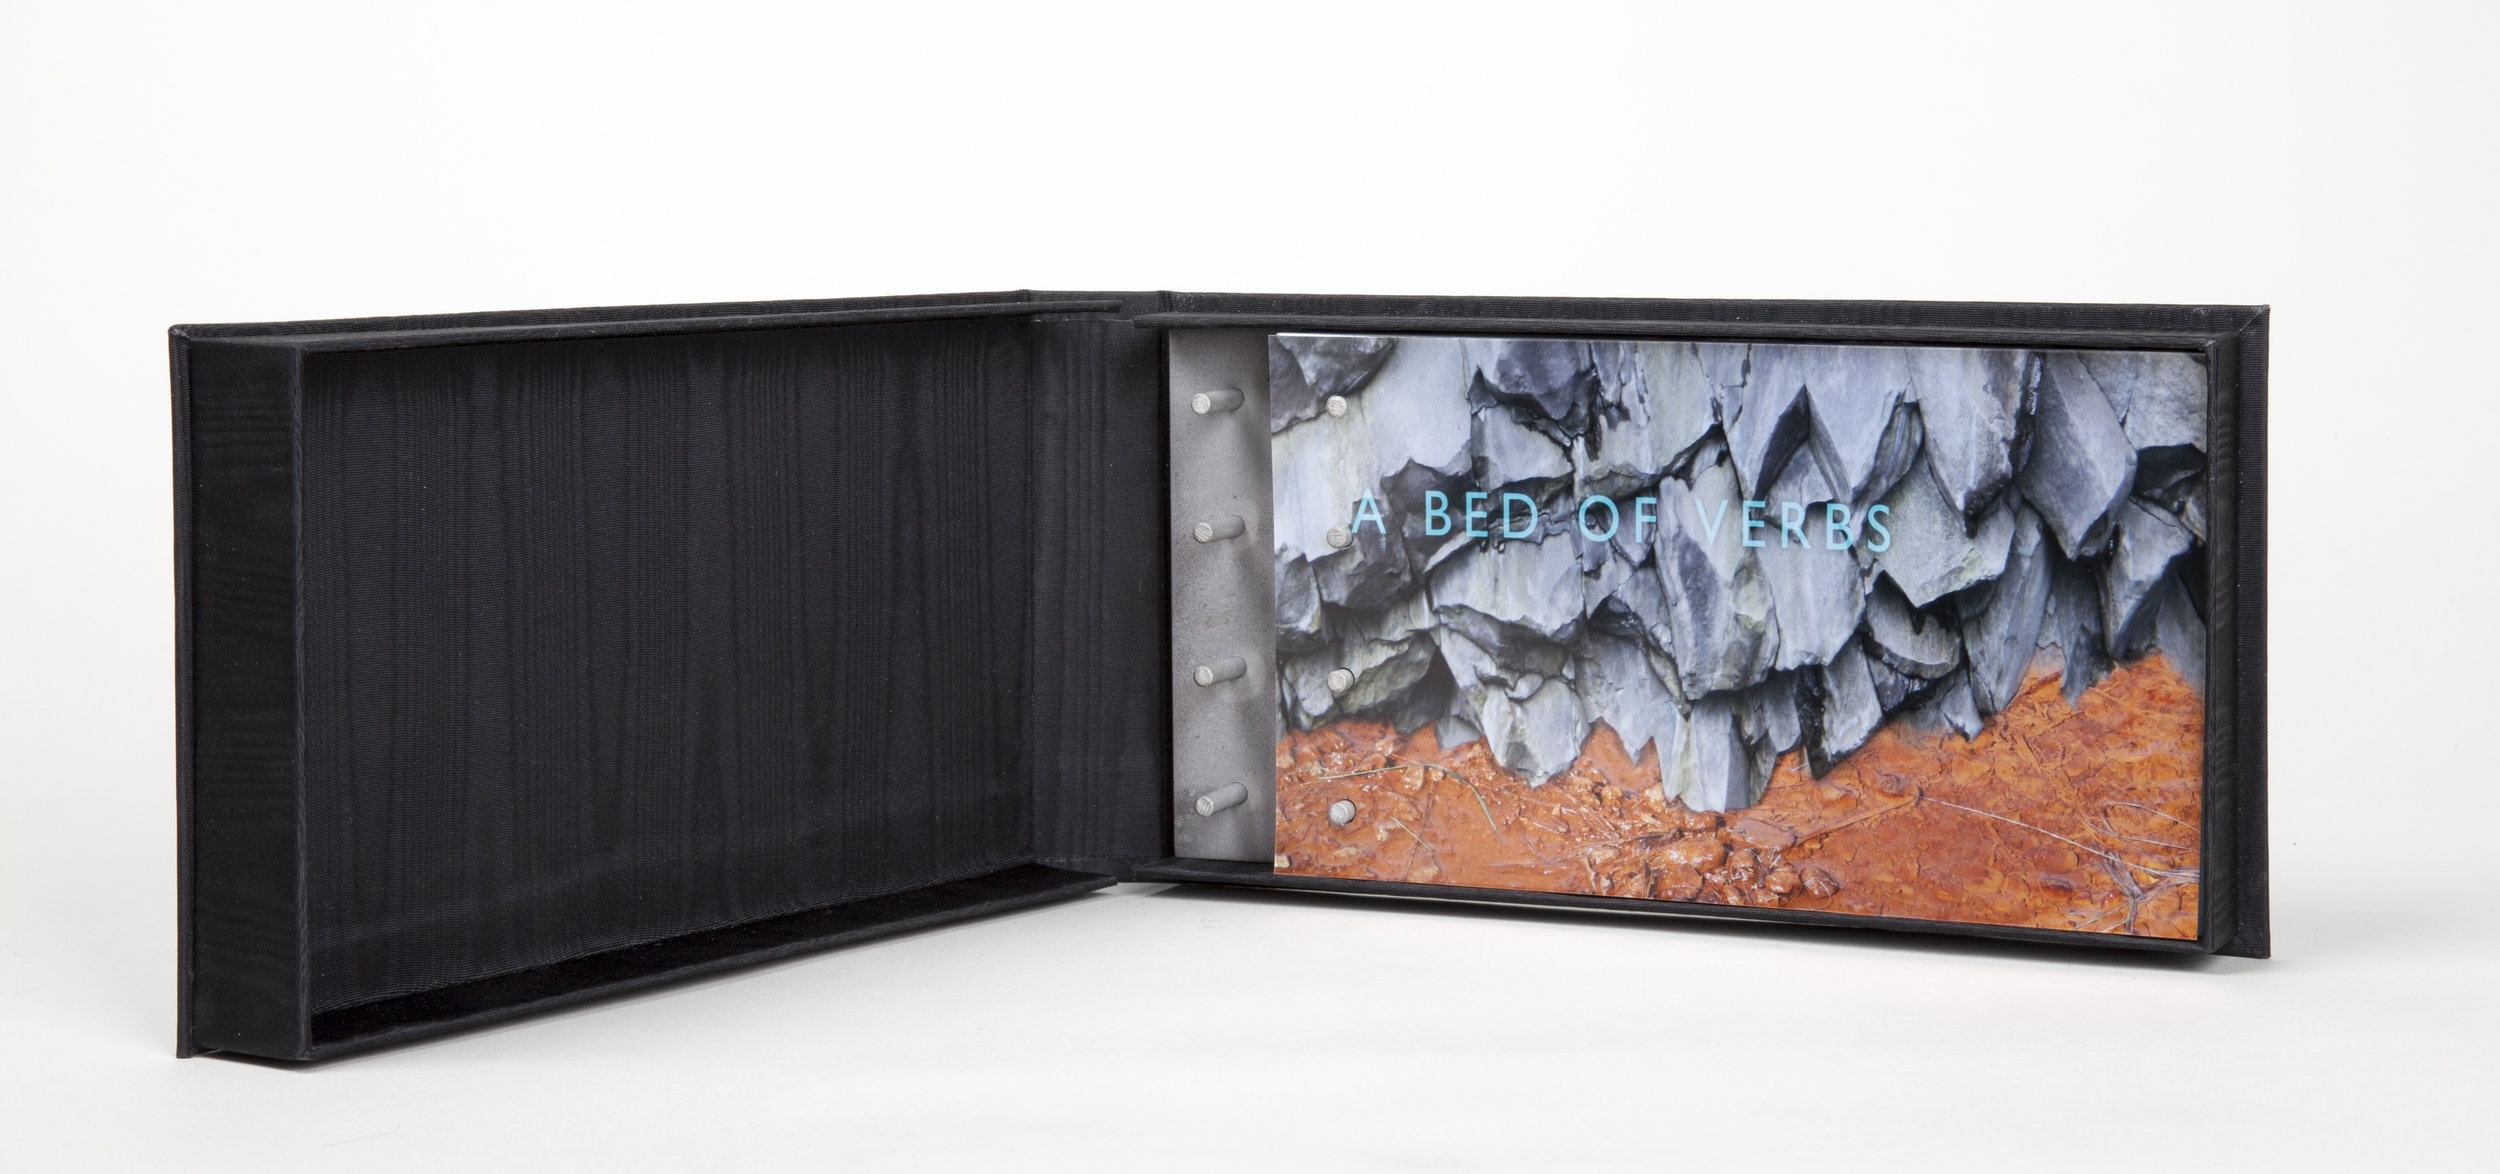 A Bed of Verbs, 2014.  Artist Book with Clamshell: digital prints on Moab Entrada 190 and metal coated papers.  5.25 x 9.75 x 1 inches (closed clamshell box)